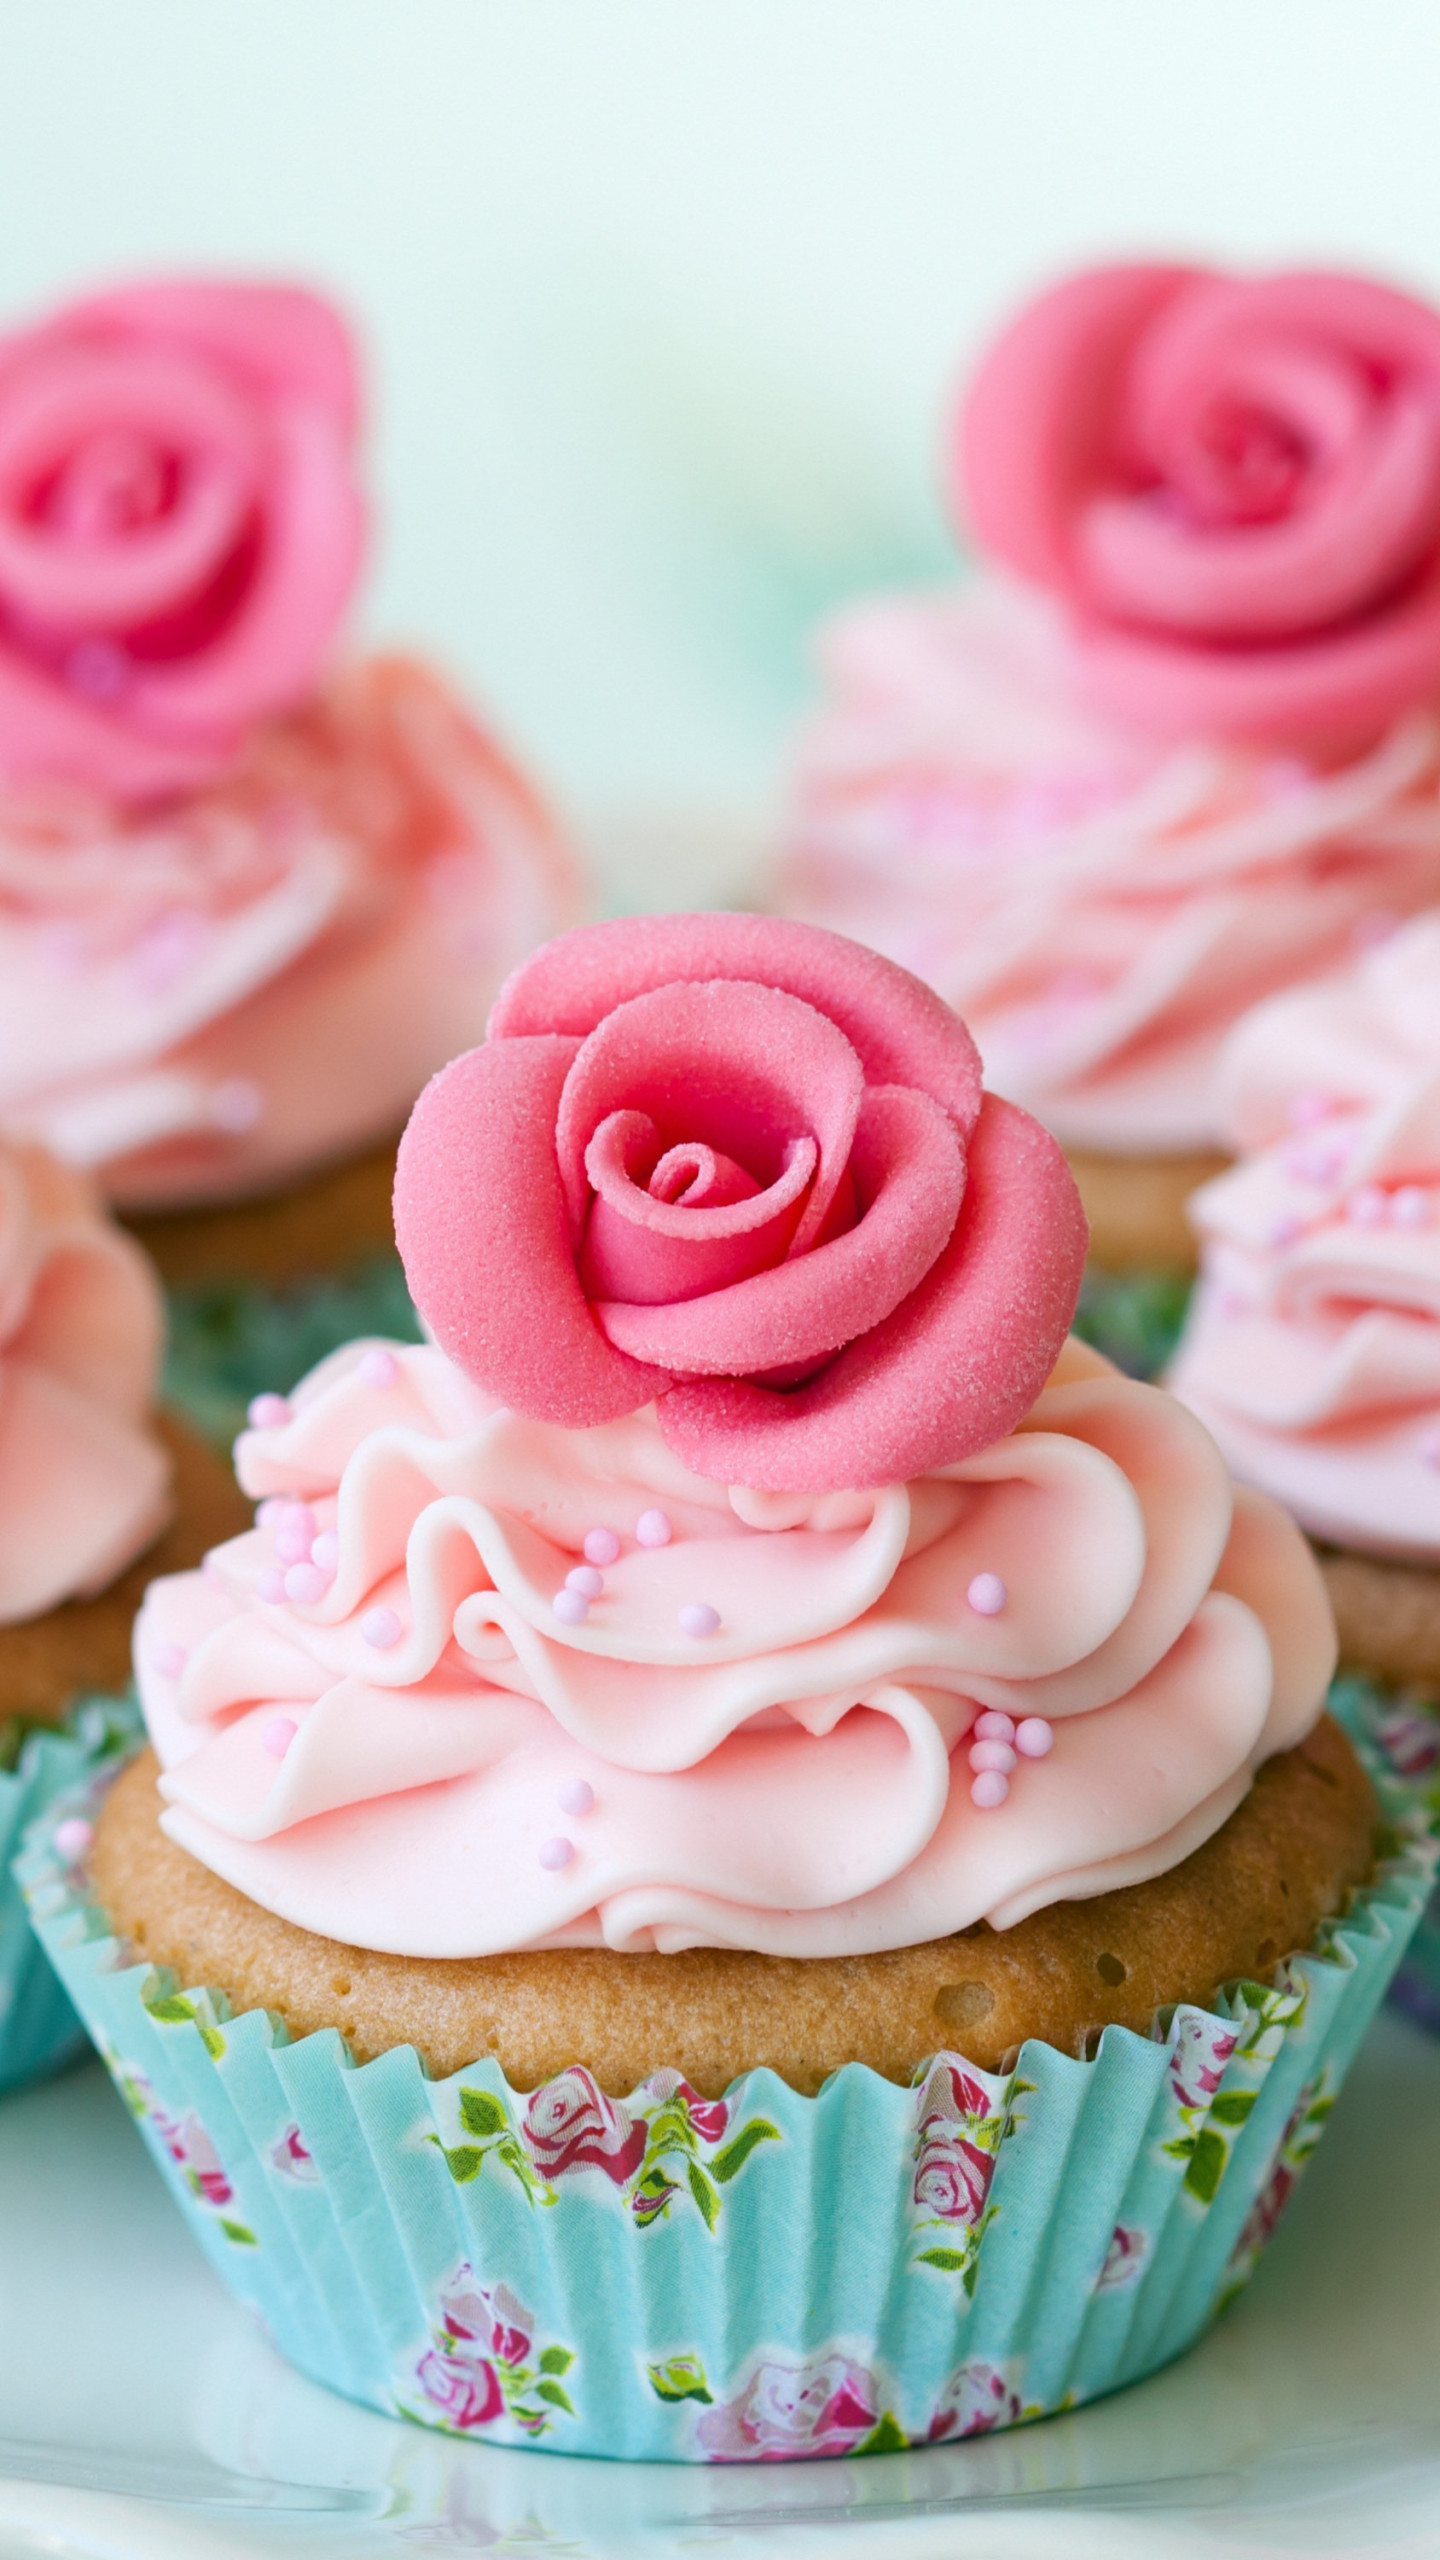 Res: 1440x2560, Cupcake Images #7036907